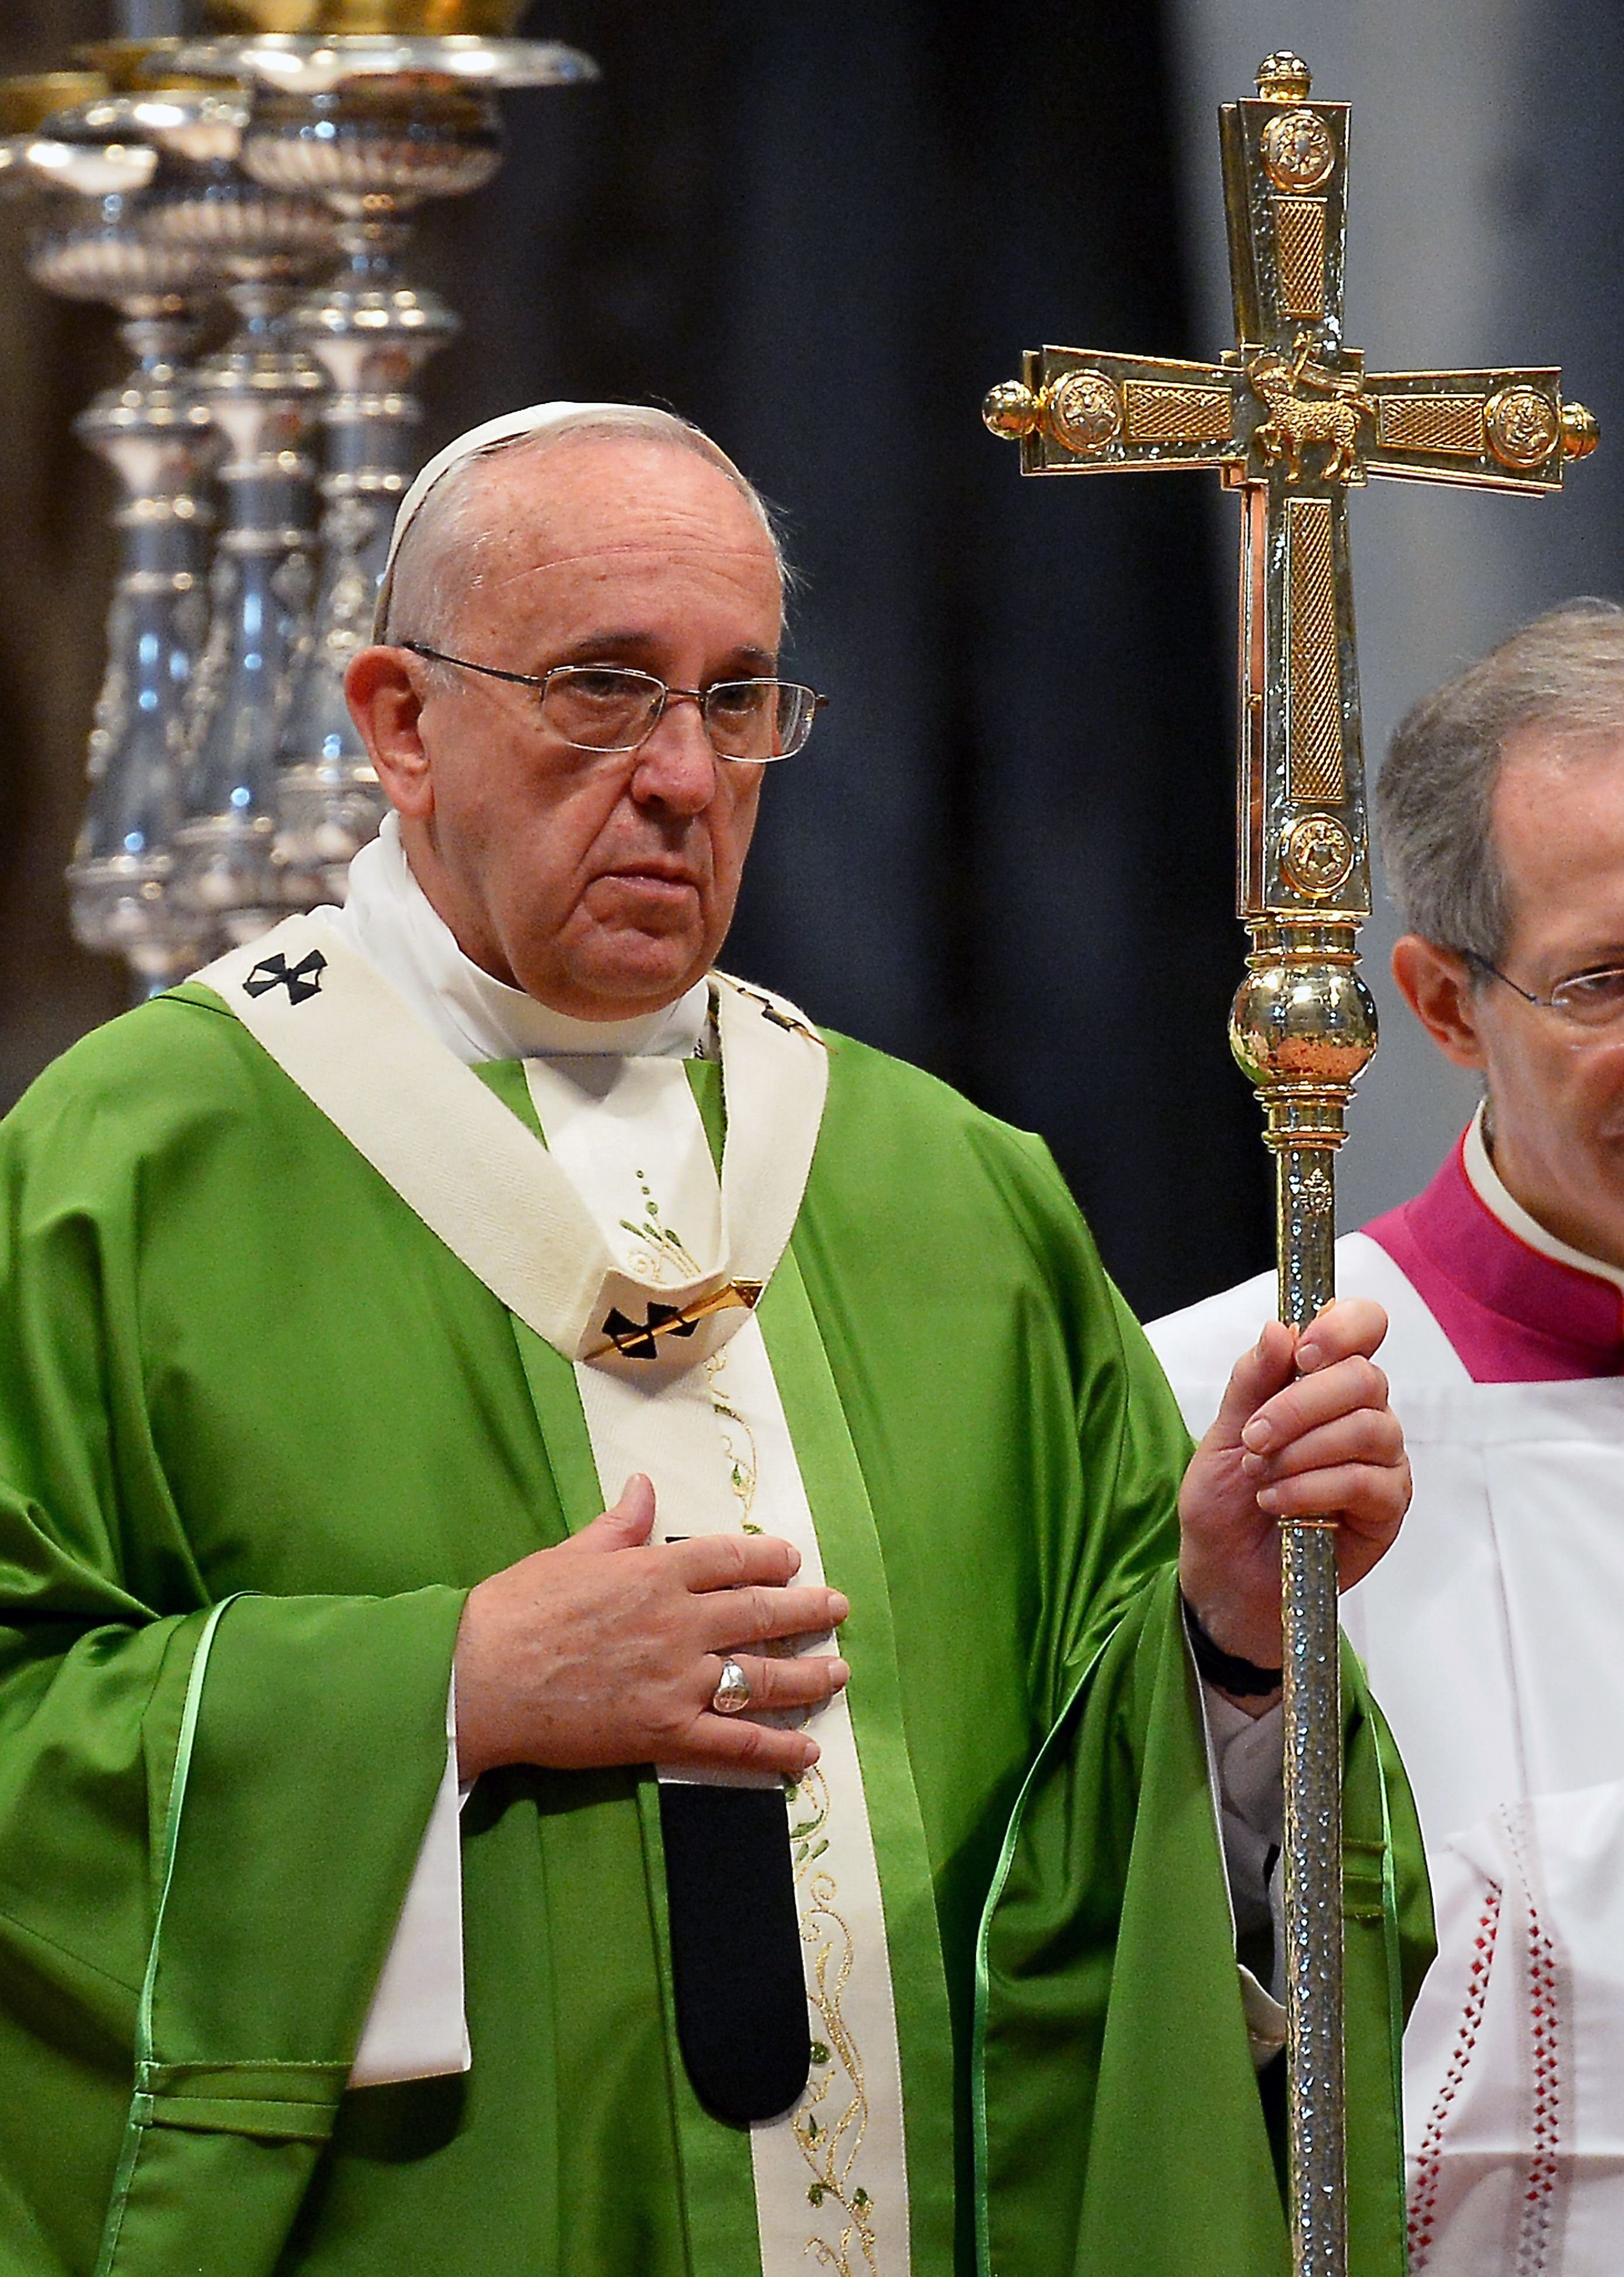 Pope Francis leads a mass honouring the canonisation of two Canadian saints in St. Peter's basilica at the Vatican on Oct. 12, 2014.